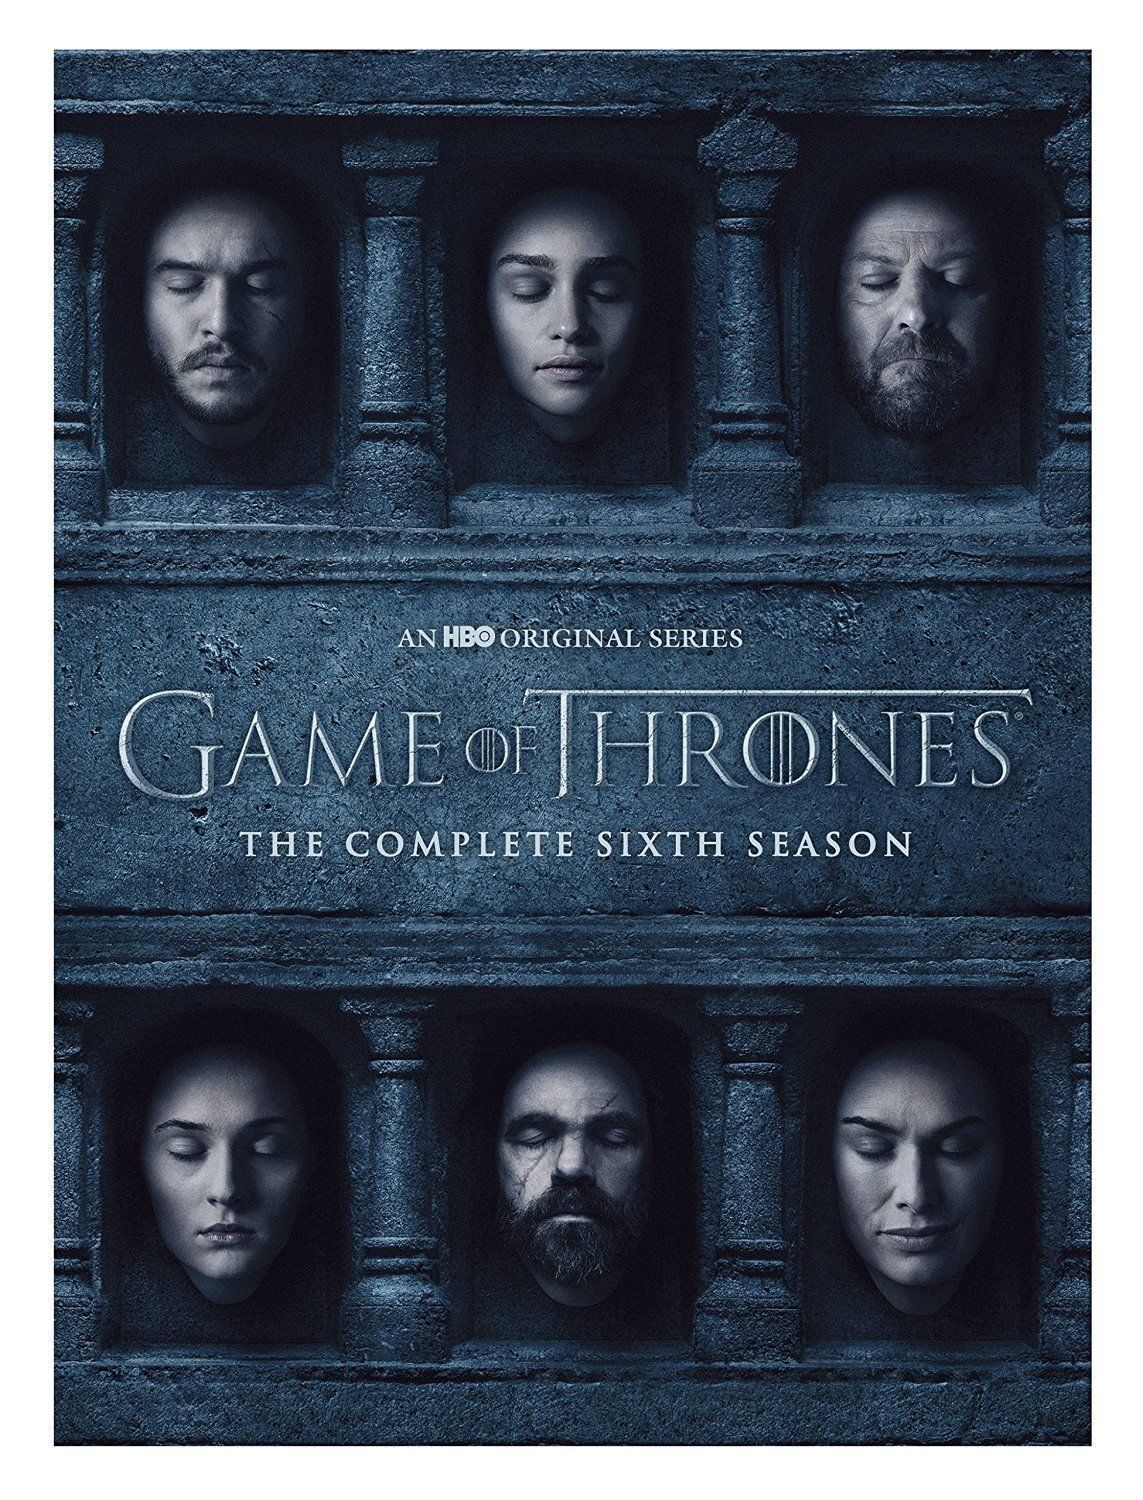 Game of Thrones: The Complete Sixth Season 6 (DVD Set New)  HBO TV Series